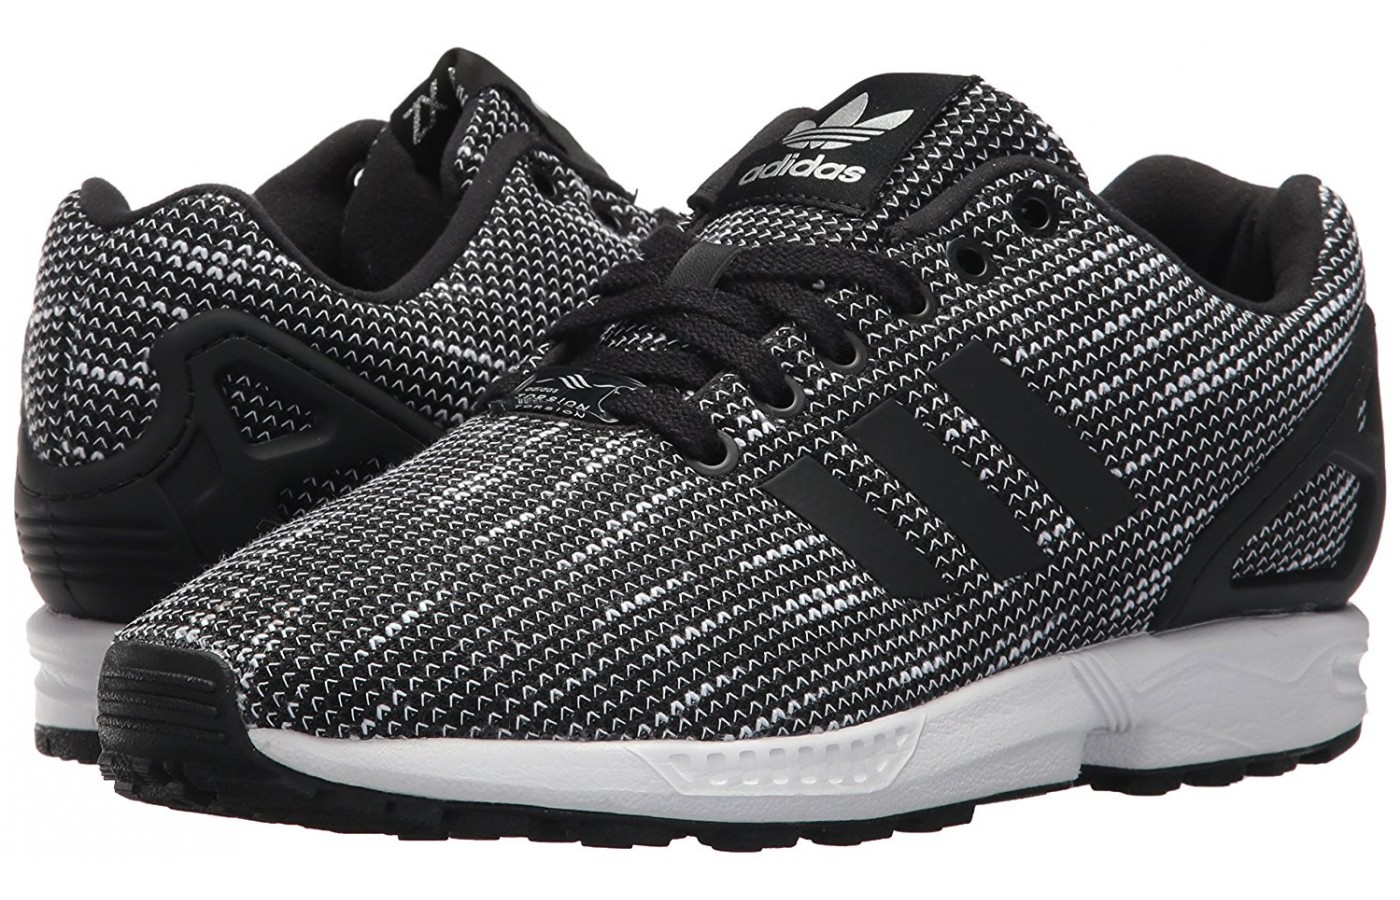 22541e89640a8 Adidas ZX Flux Reviewed   Tested for Performance in 2019